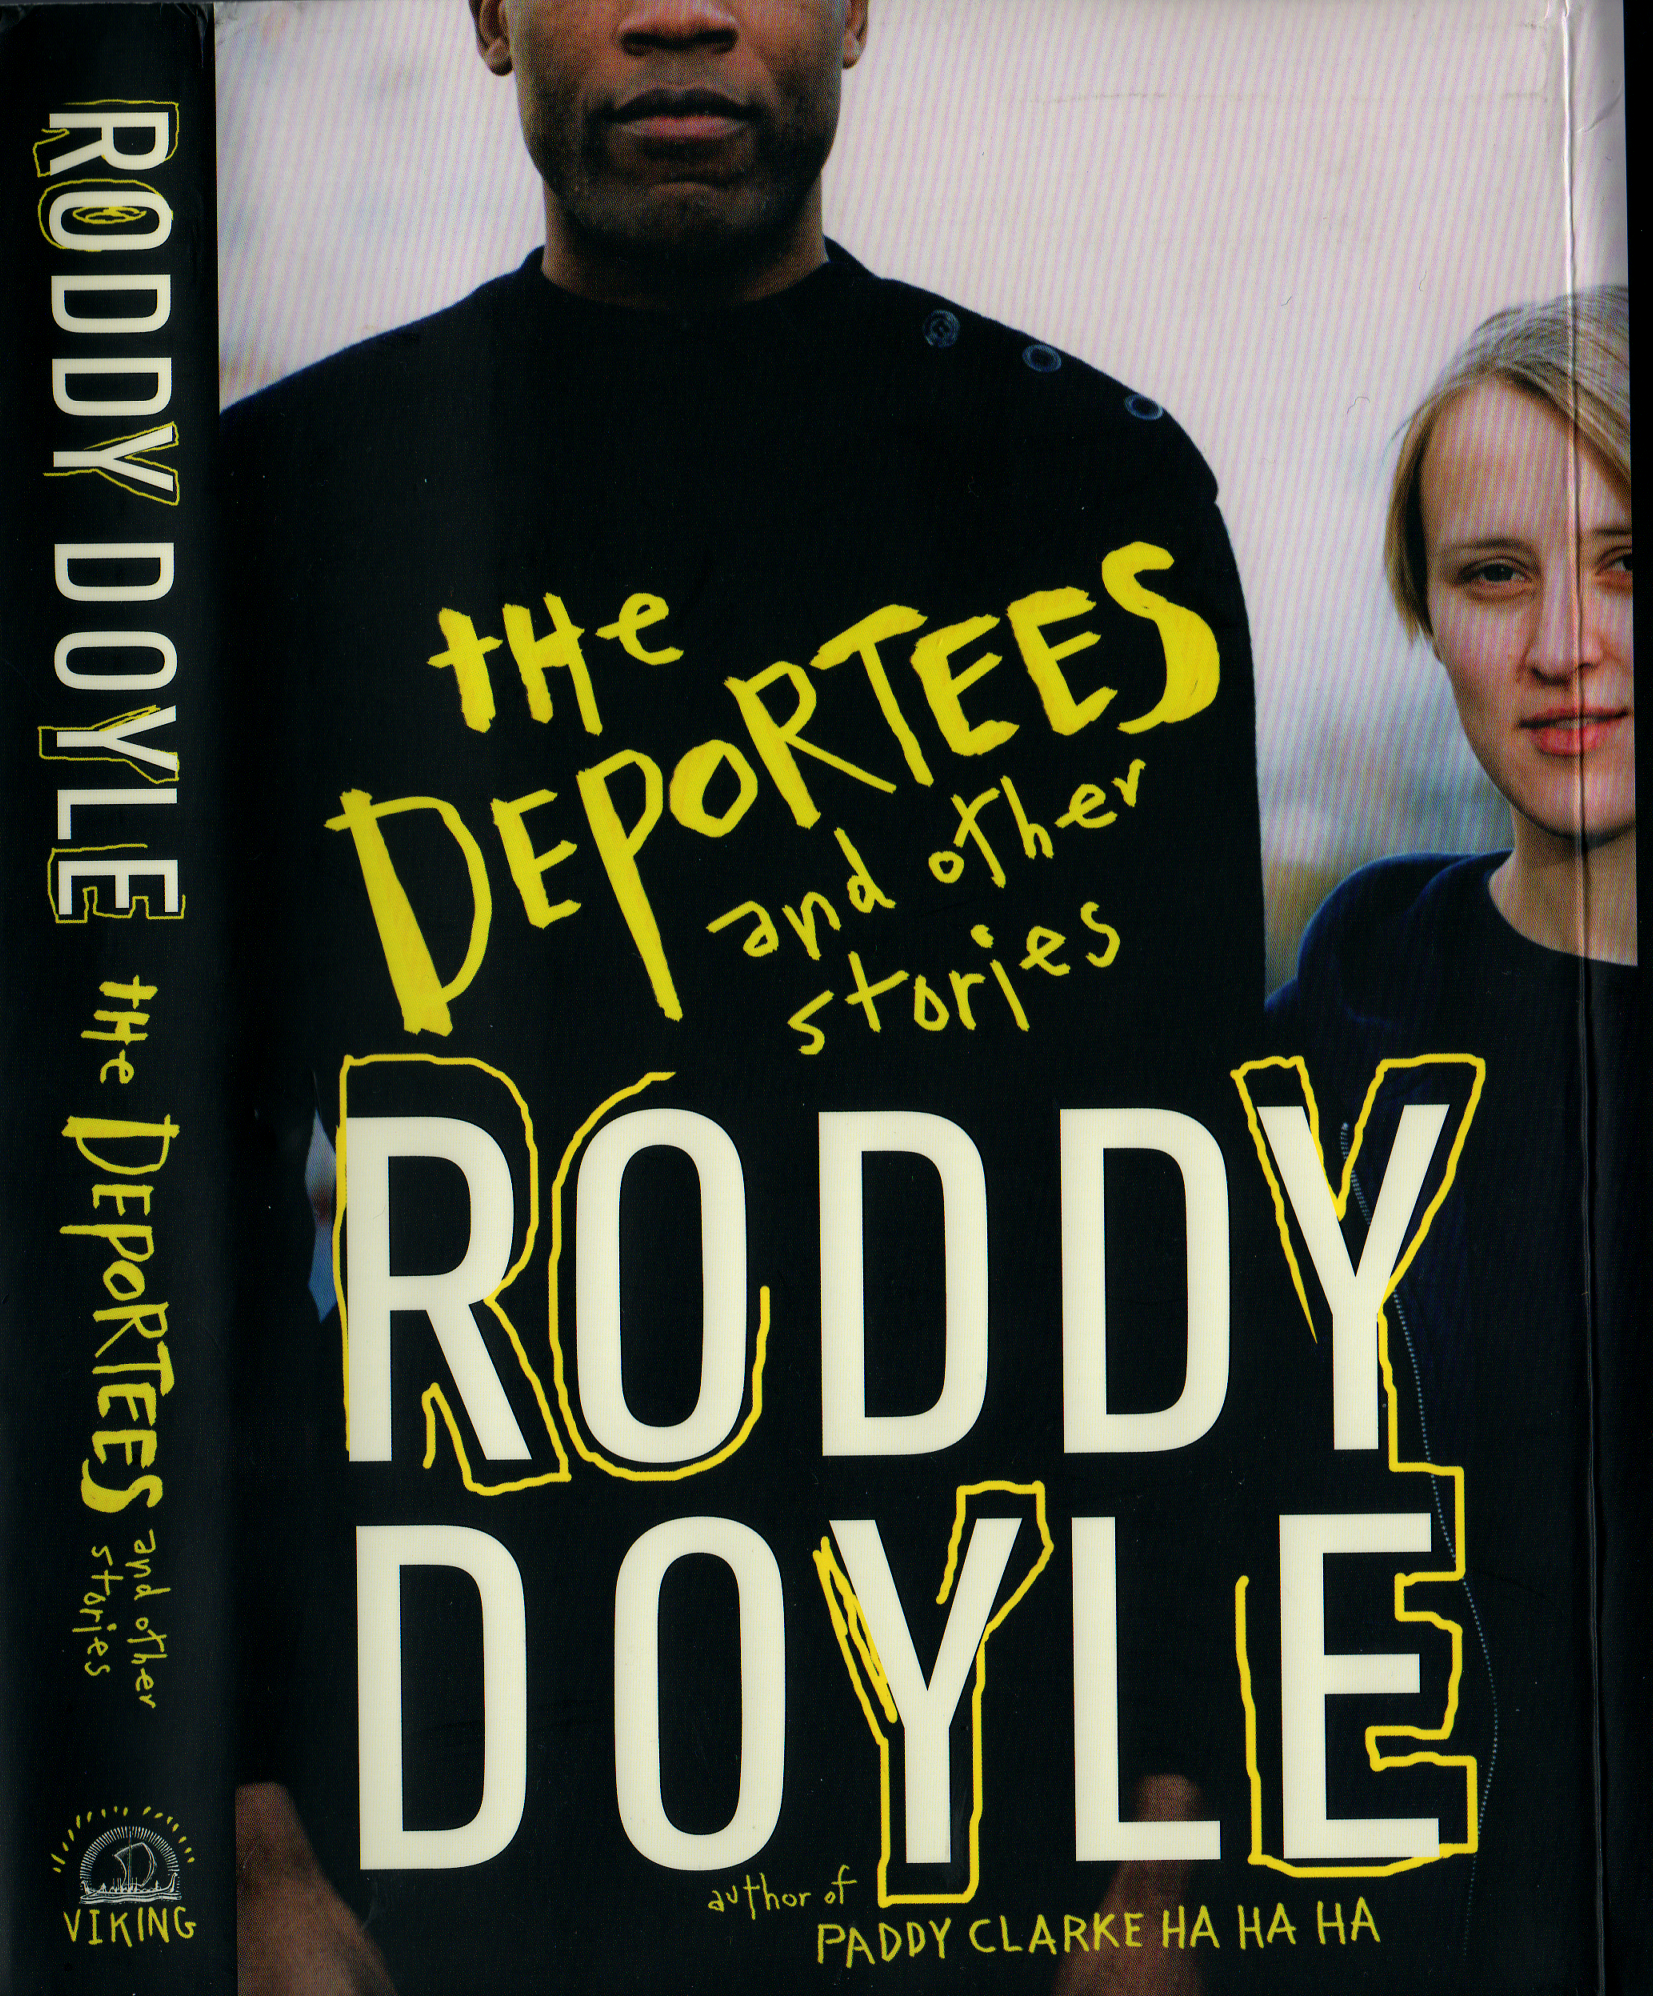 """Roddy Doyle's """"The Deportees and other stories"""""""